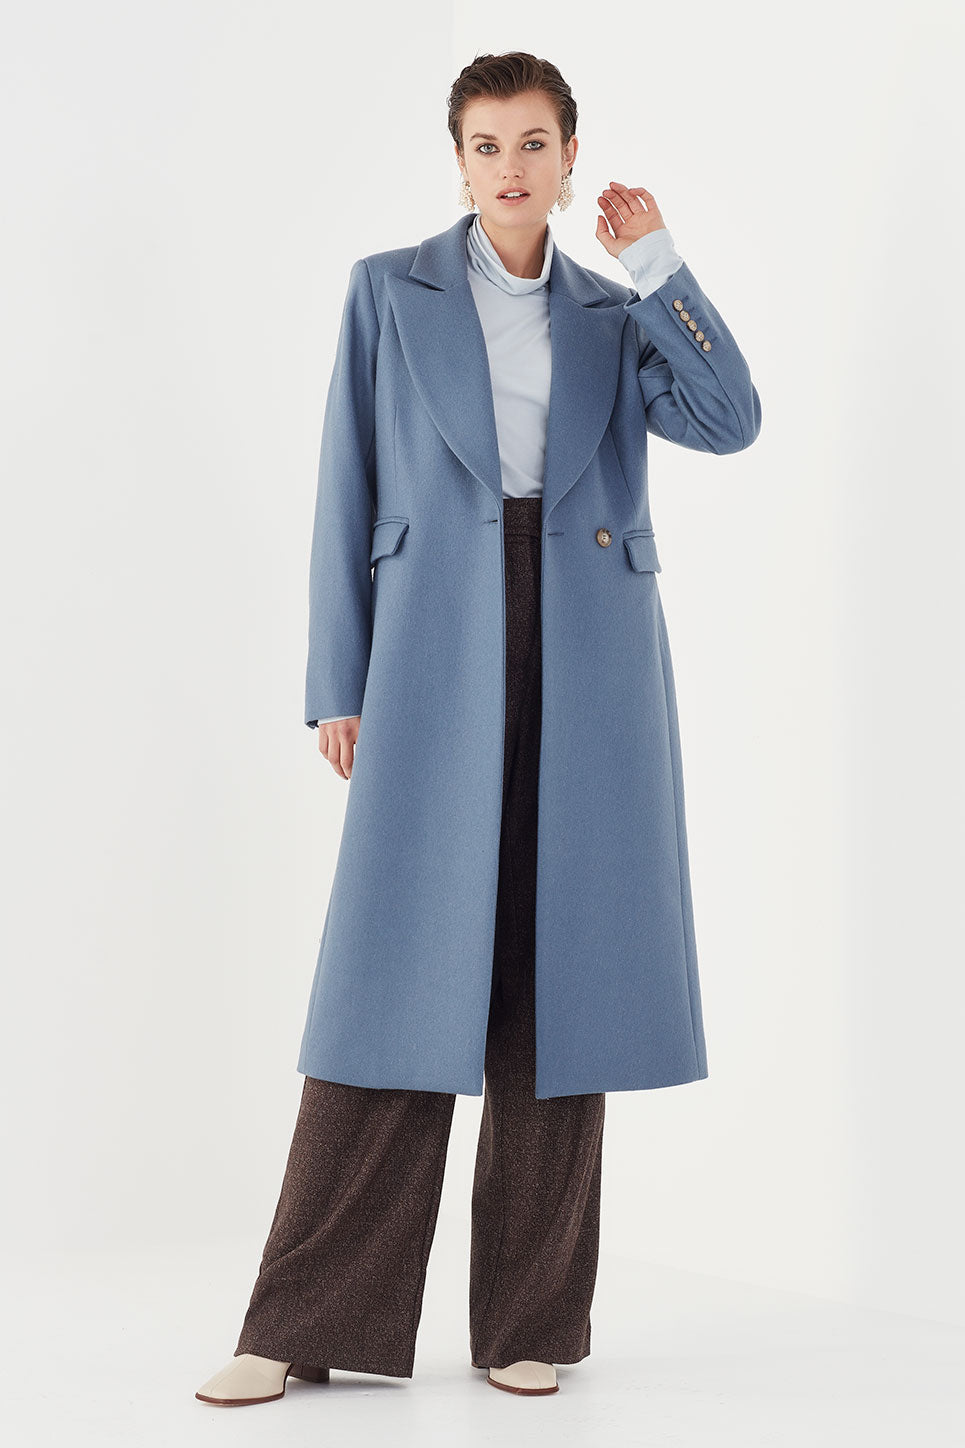 The Carter Coat in Cornflower